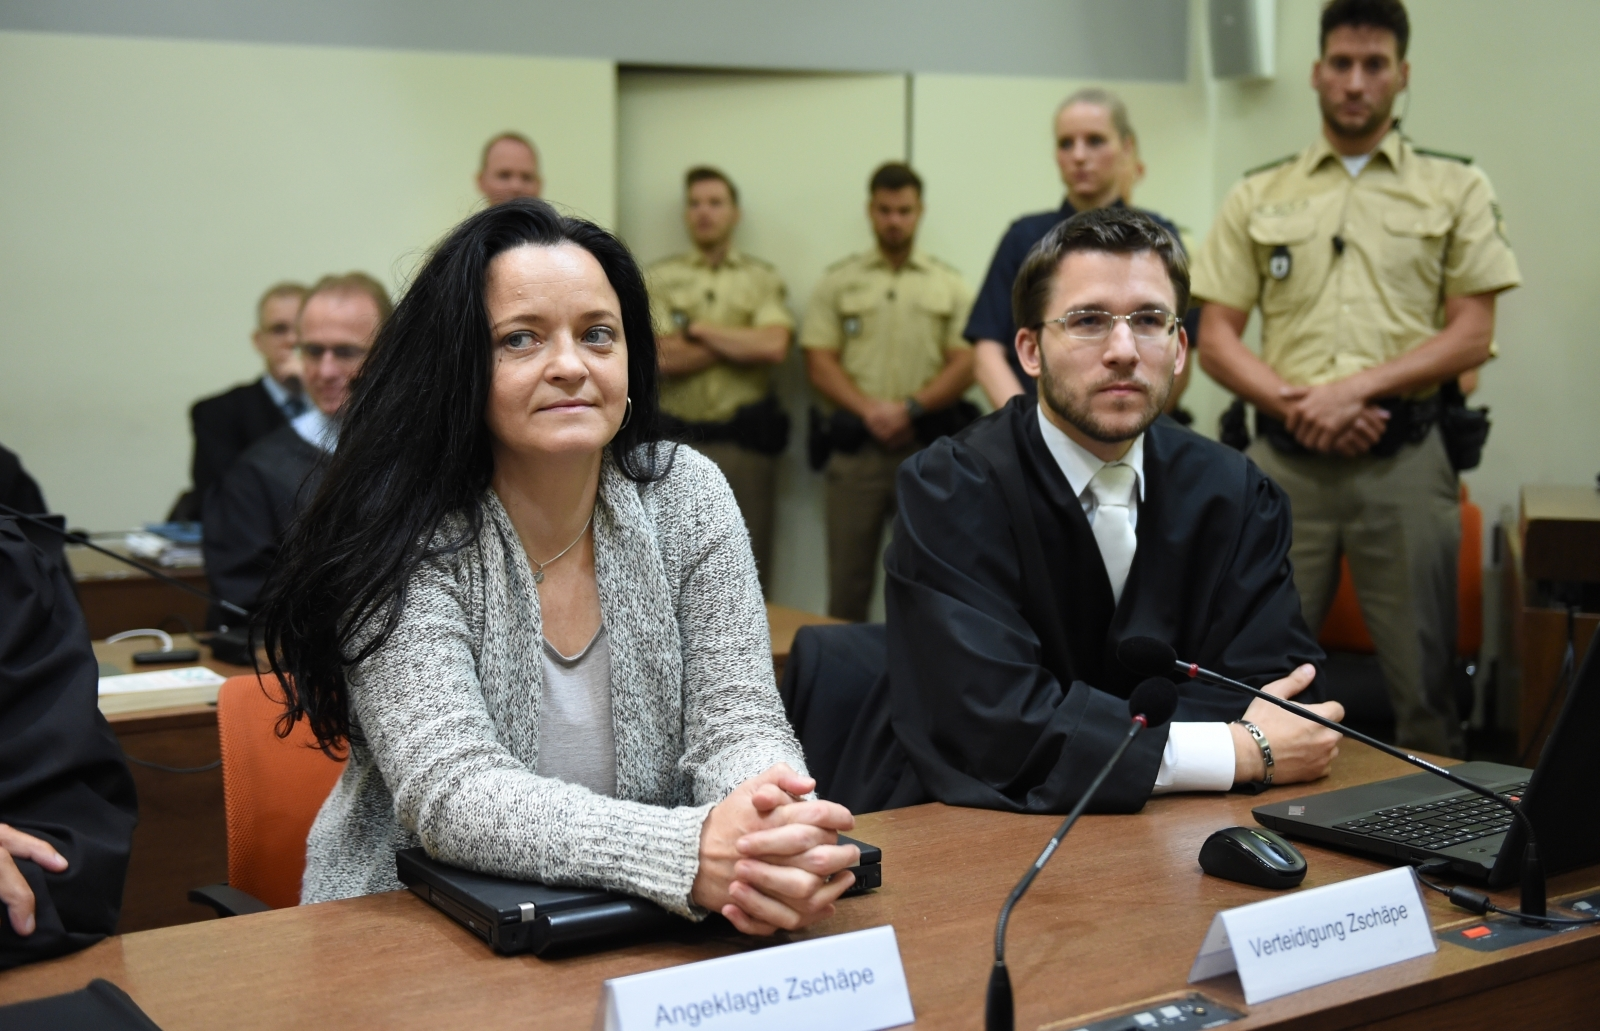 Beate Zschäpe is accused of 10 killings, as well as a series of bombings and robberies, as part of a neo-Nazi gang